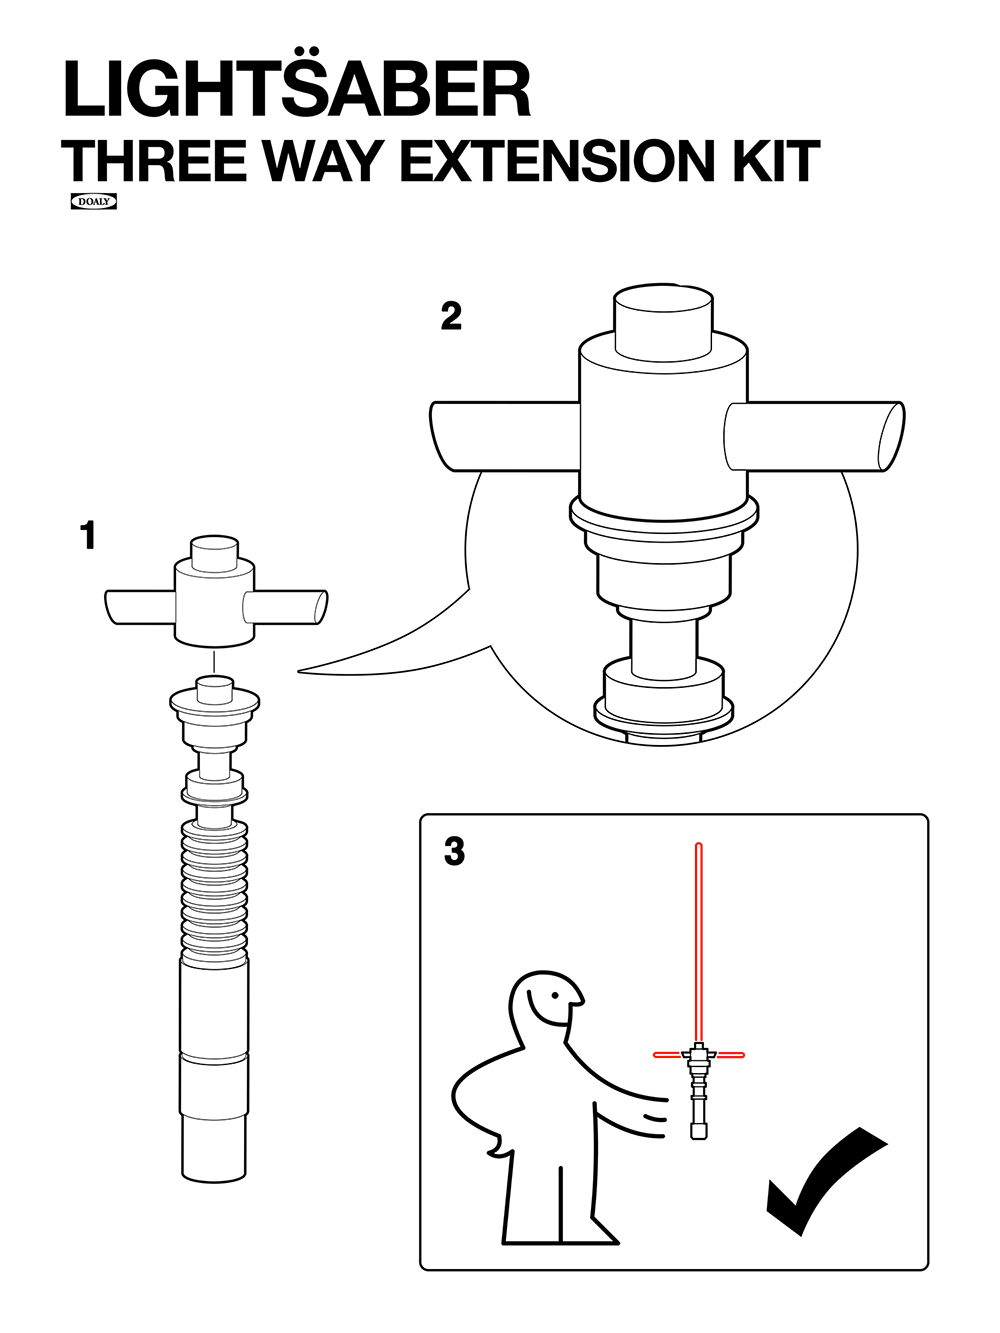 IKEA Style Manual for Lightsaber Extension Kit by Doaly